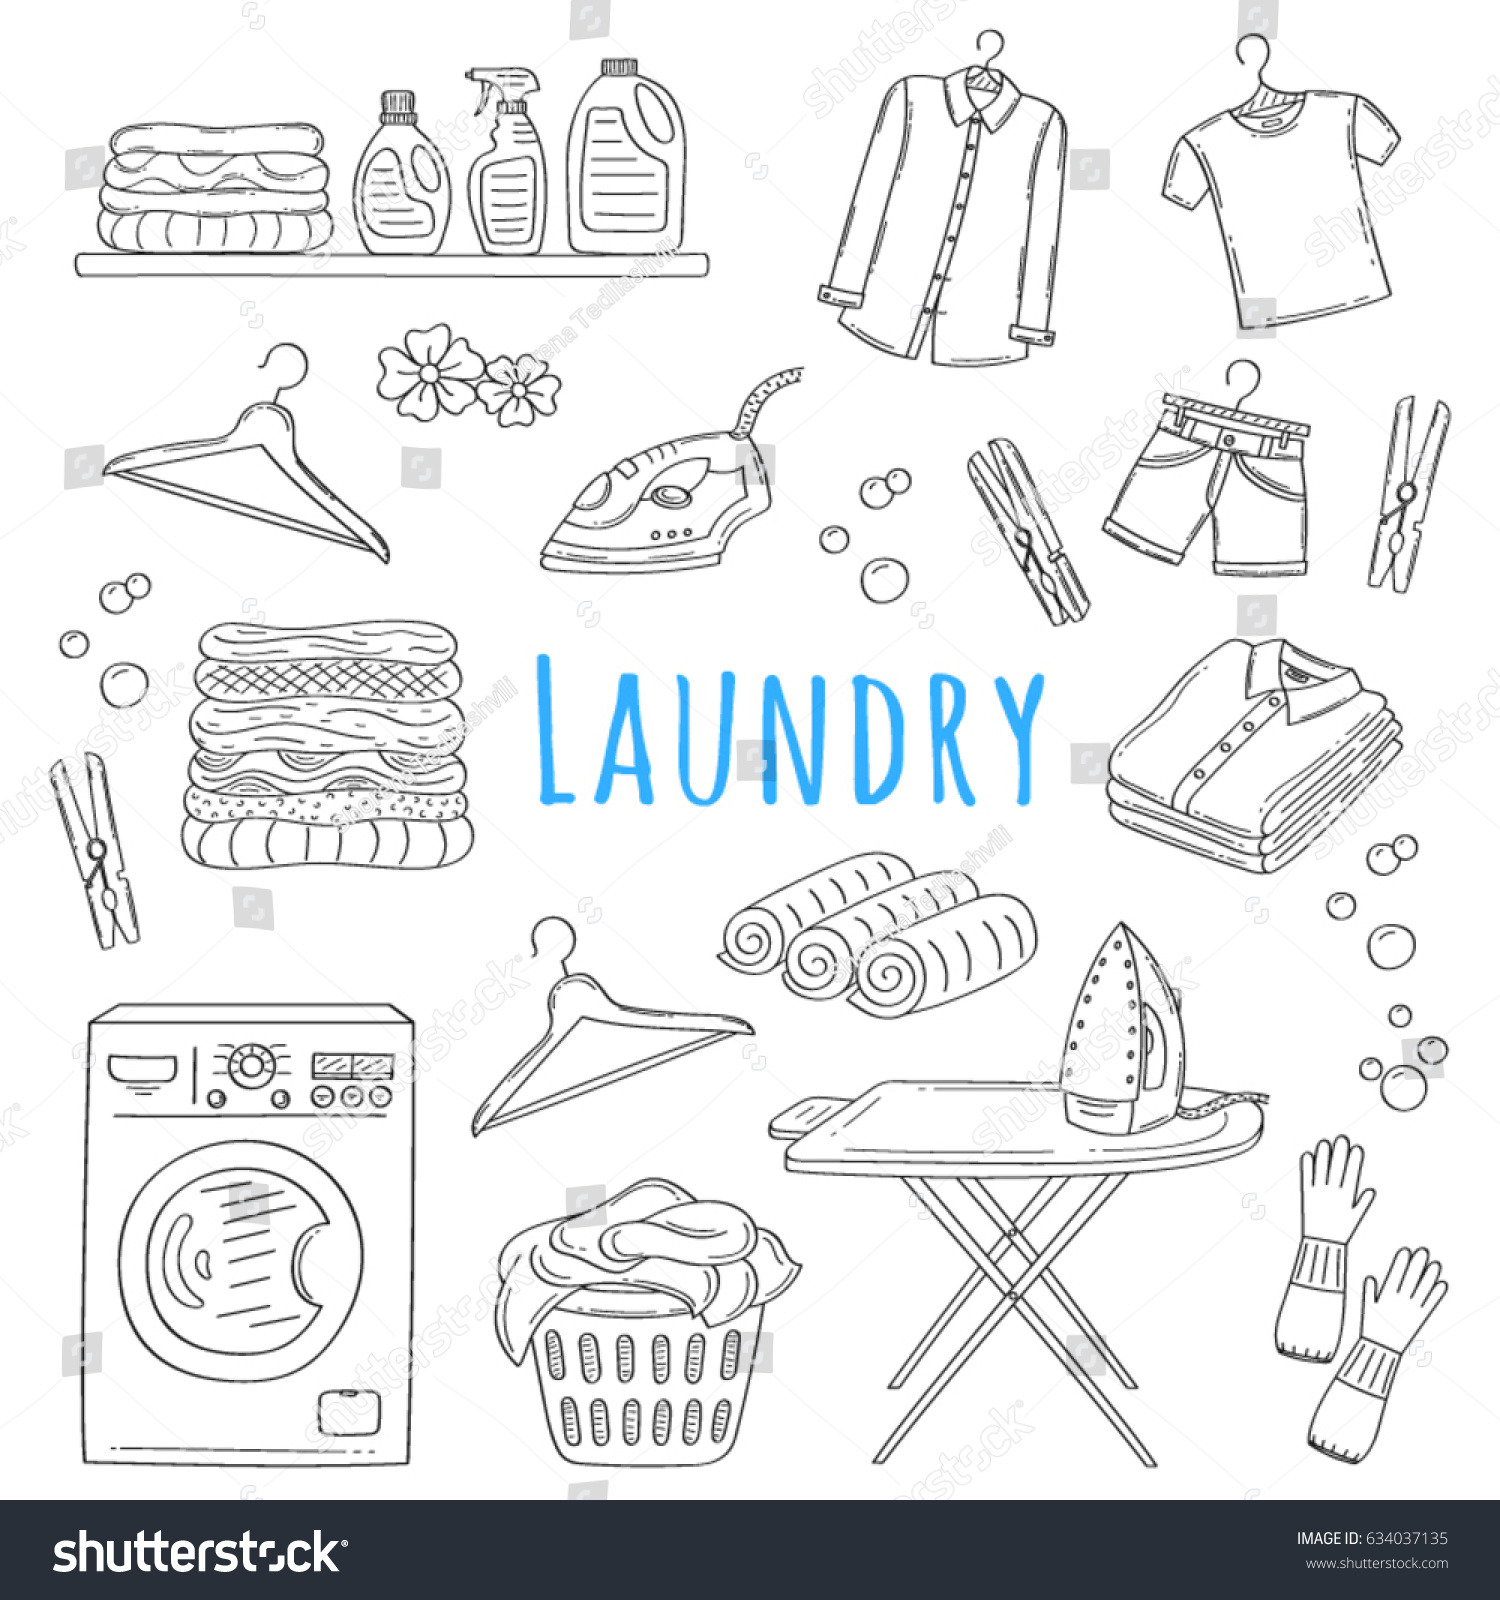 Laundry Service Hand Drawn Doodle Icons Stock Vector Royalty Free